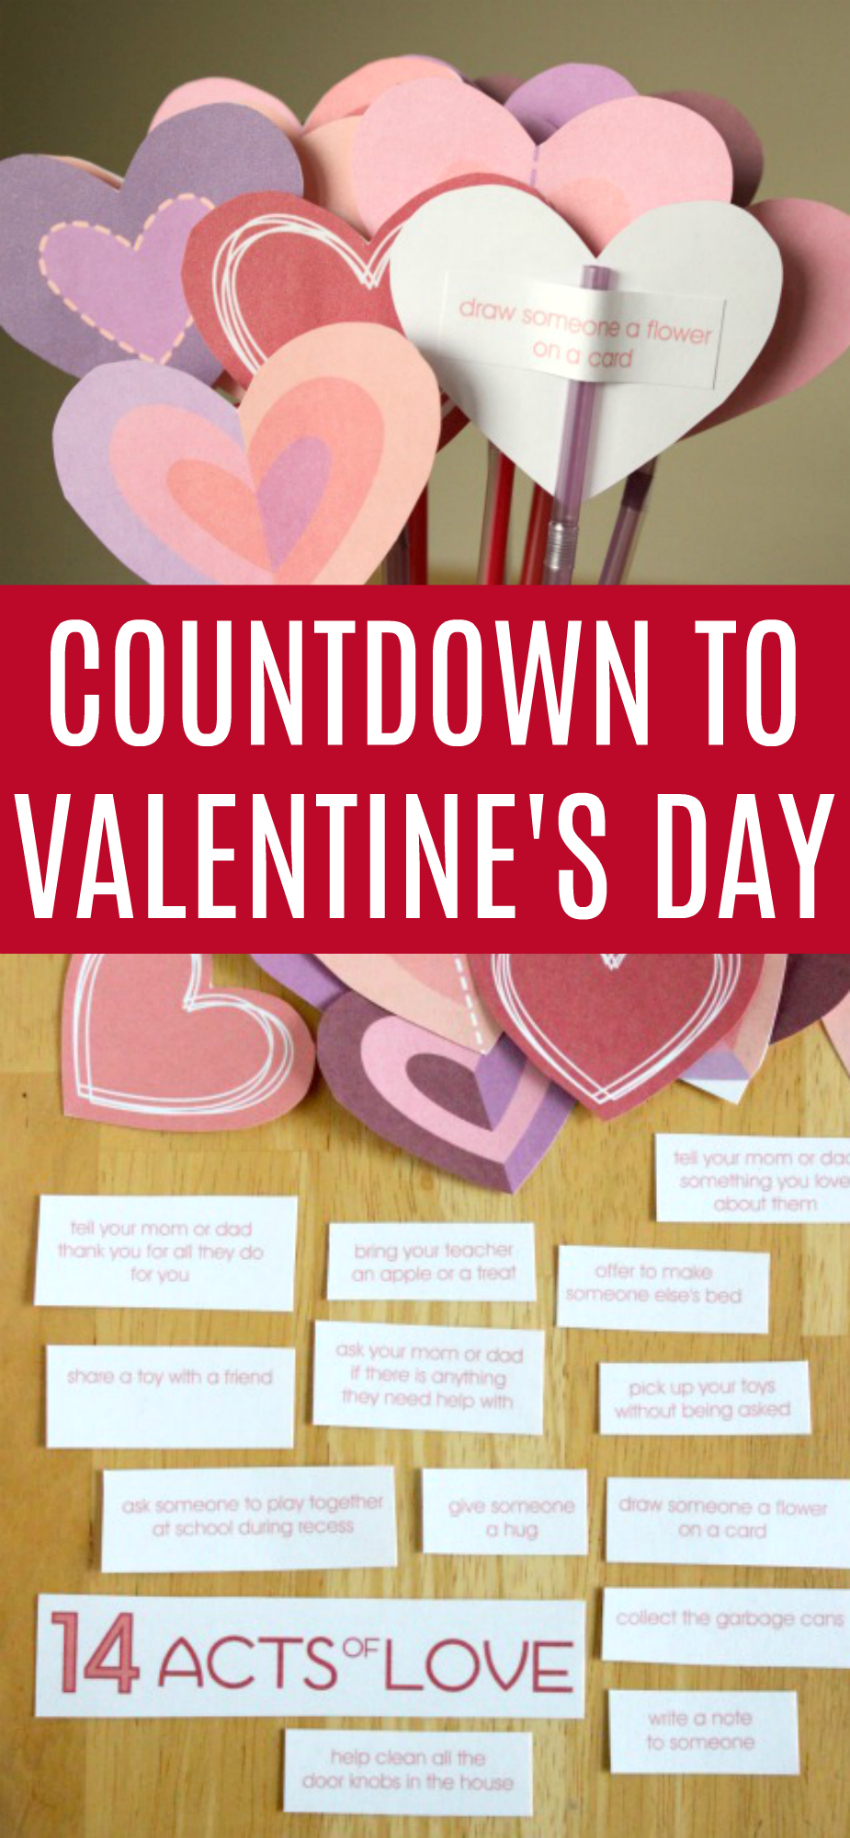 Counting Down To Valentines With 14 Acts Of Love A Free